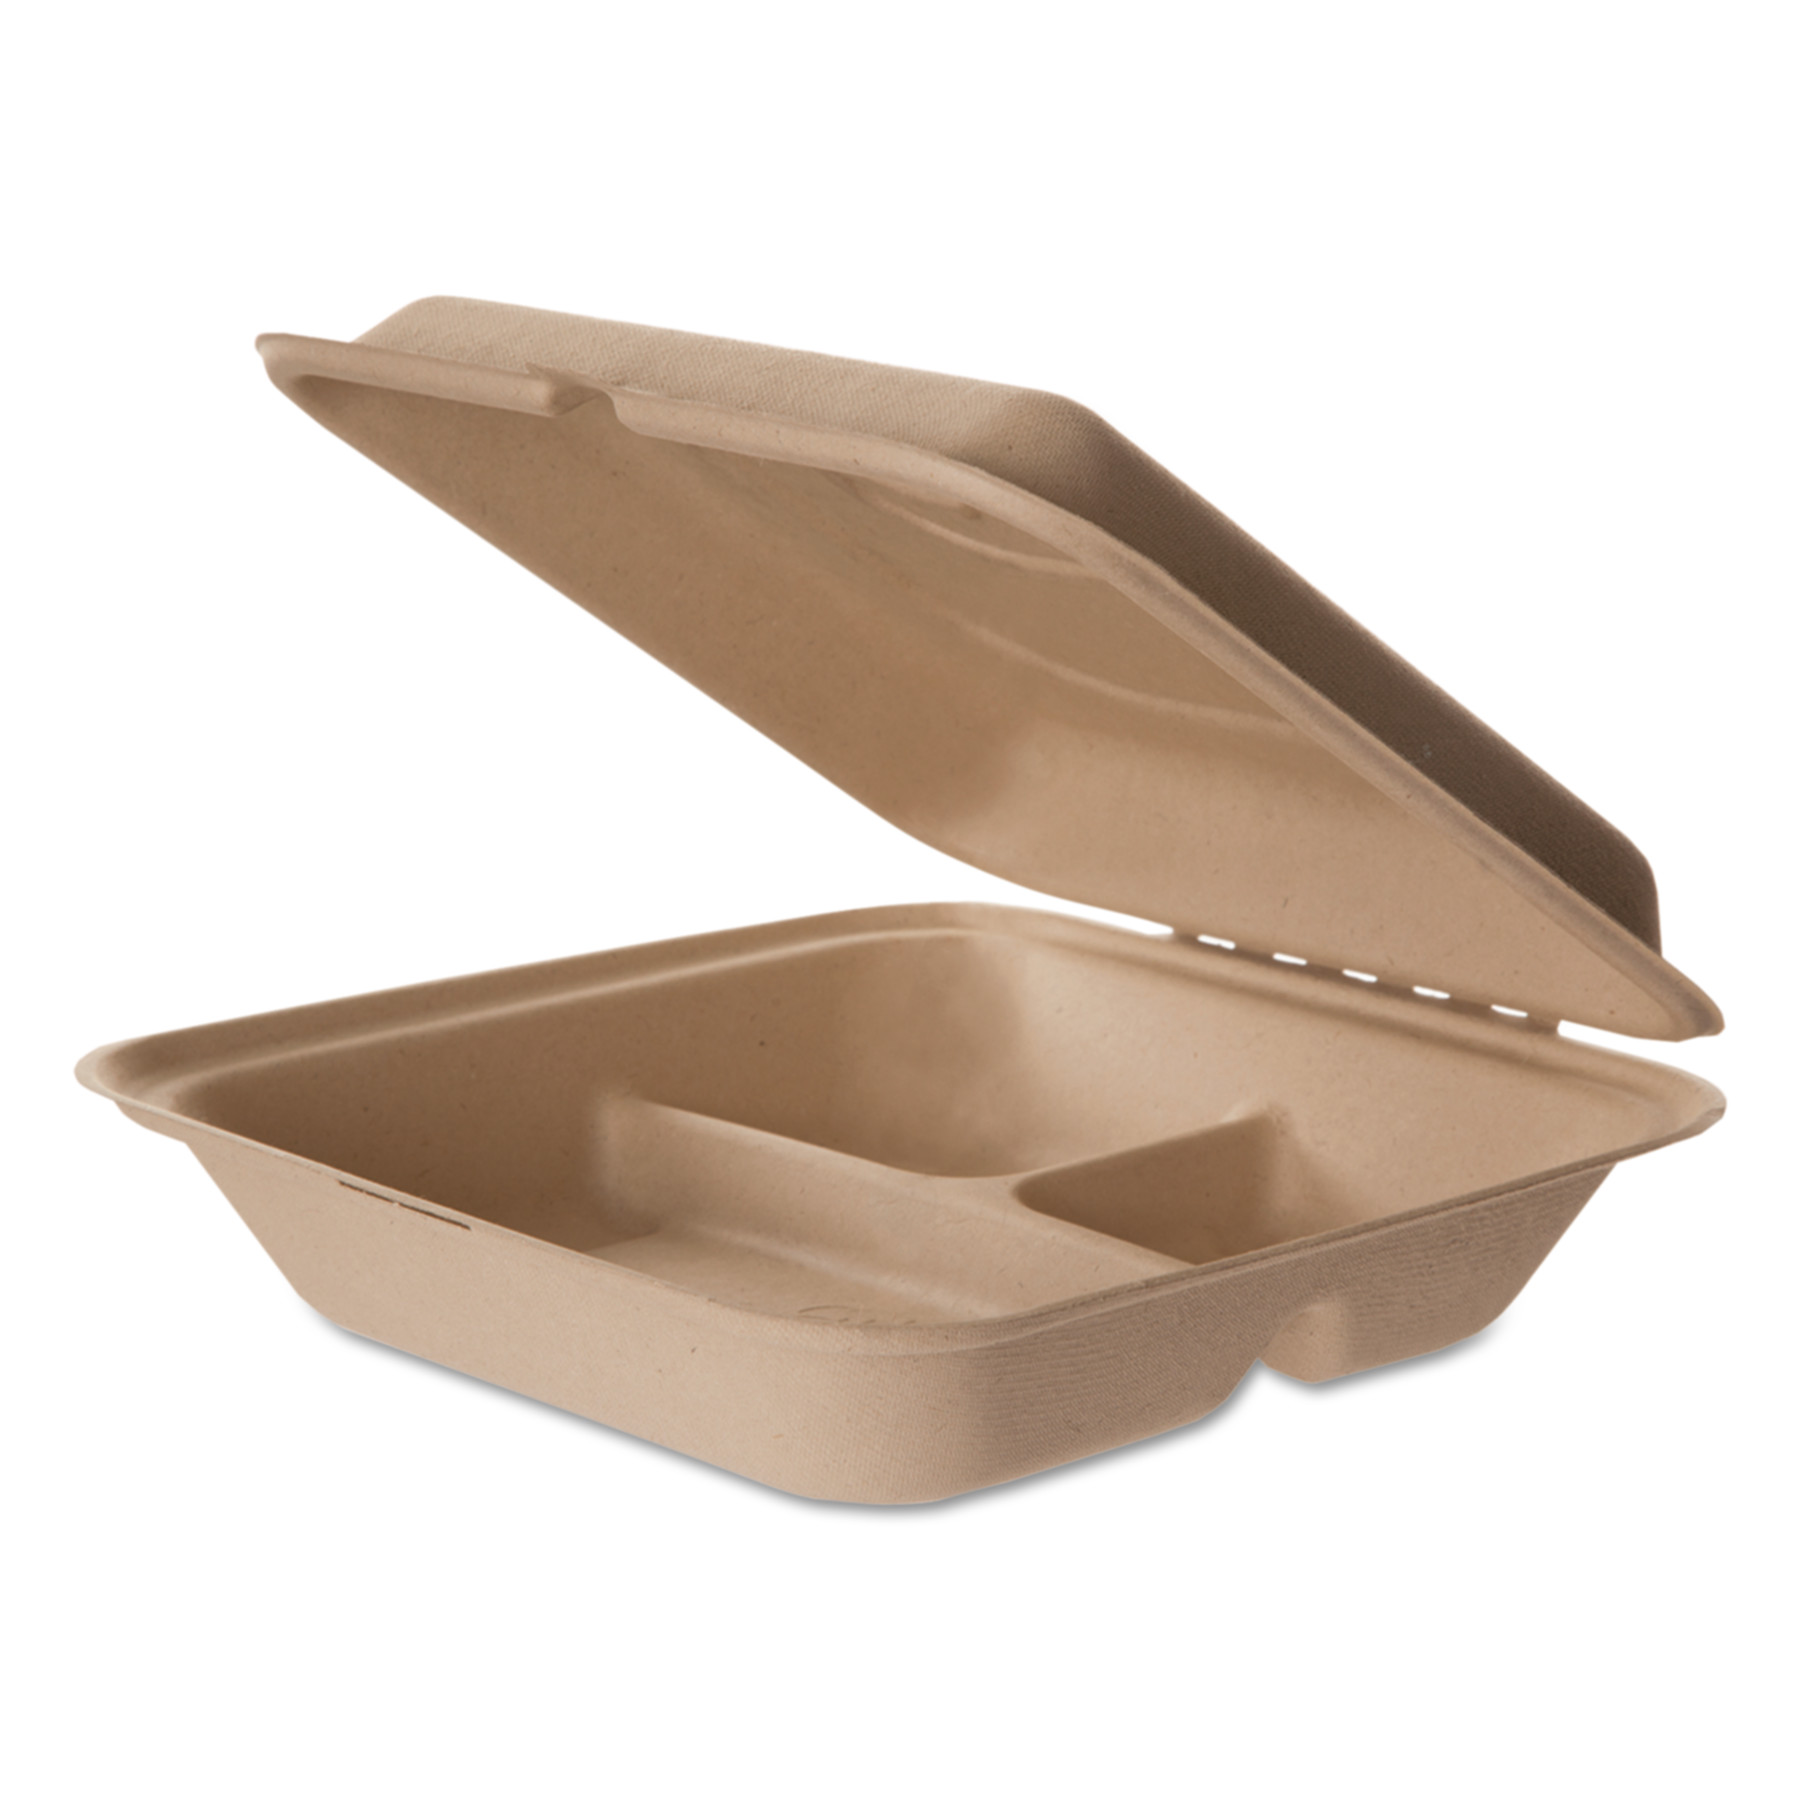 Eco-Products Wheat Straw Hinged Clamshell Containers, 8 x 8 x 3, 3-Comp, 200/Carton